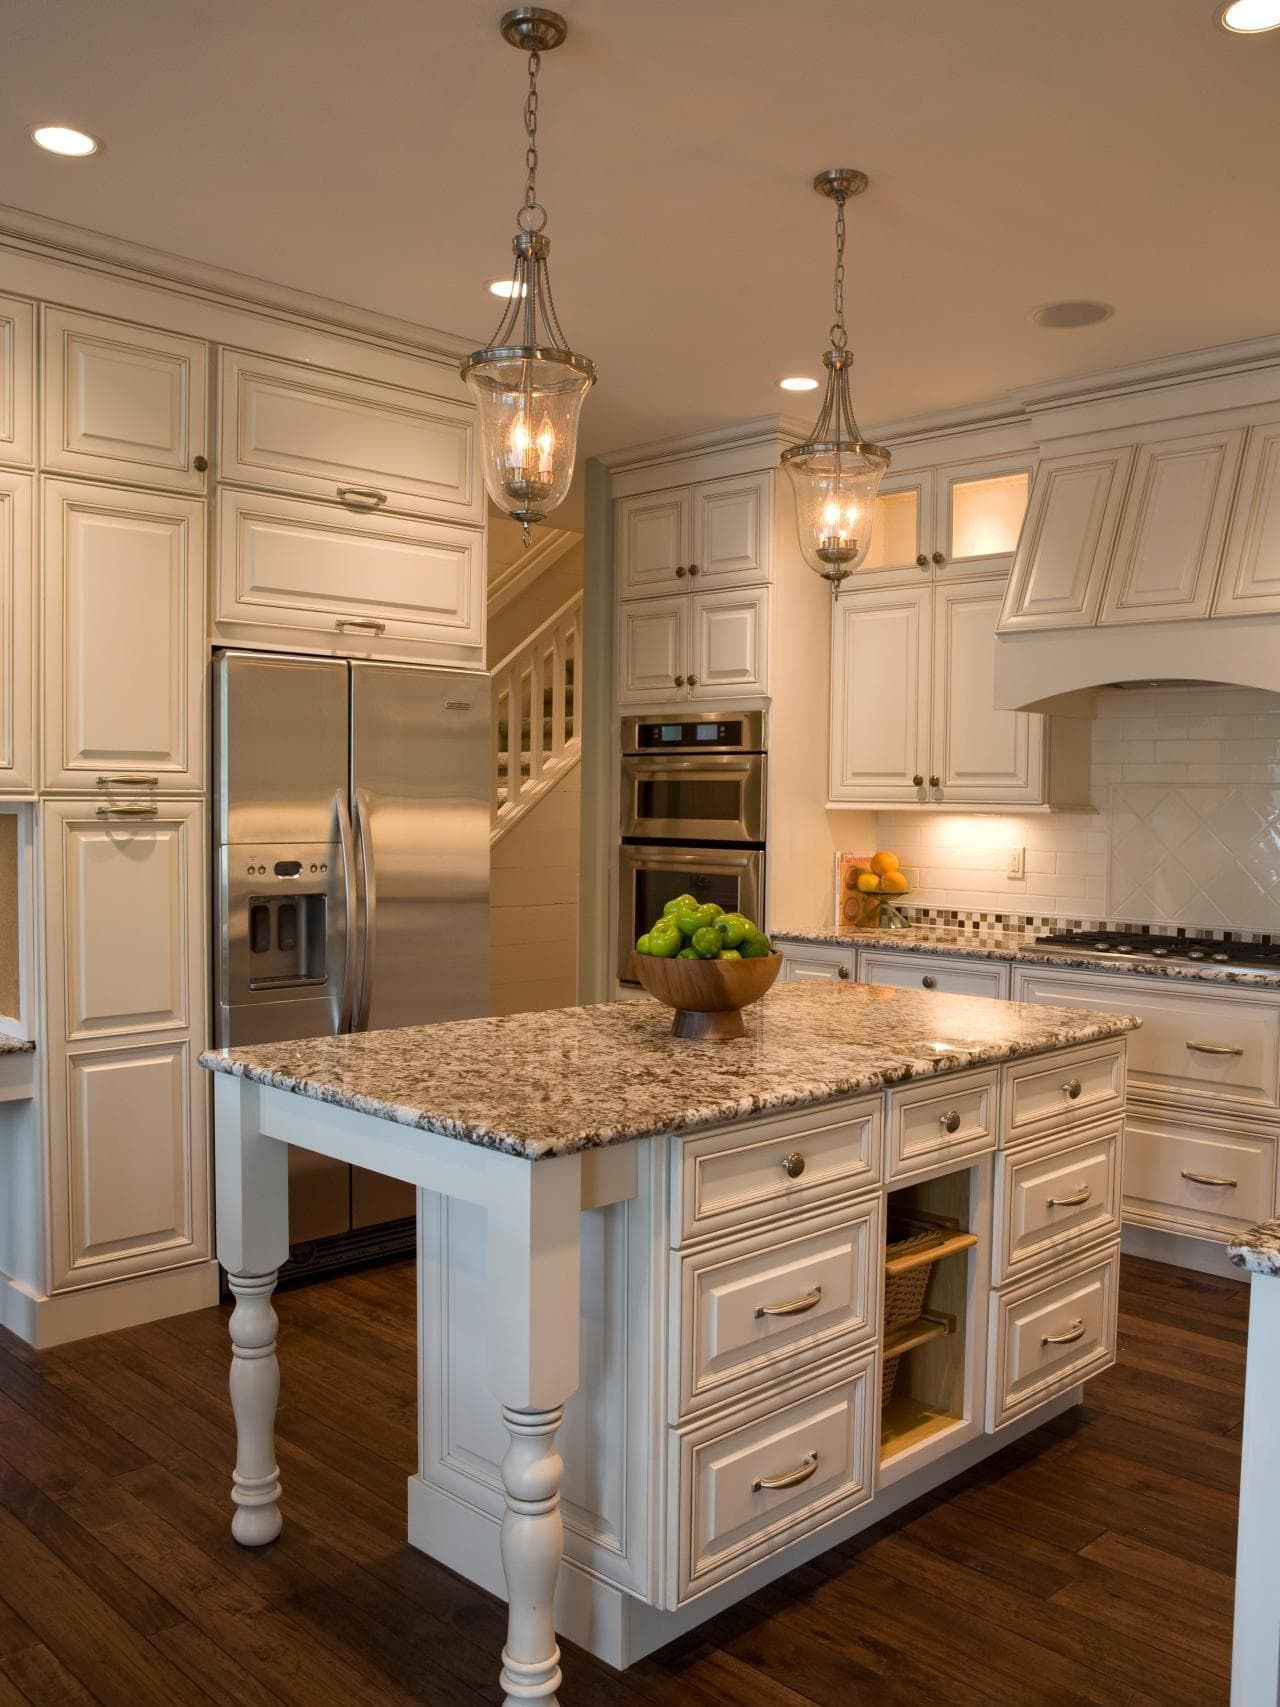 kitchen island lighting ideas best and clear lighting on Lighting Over Kitchen Island Ideas id=51474